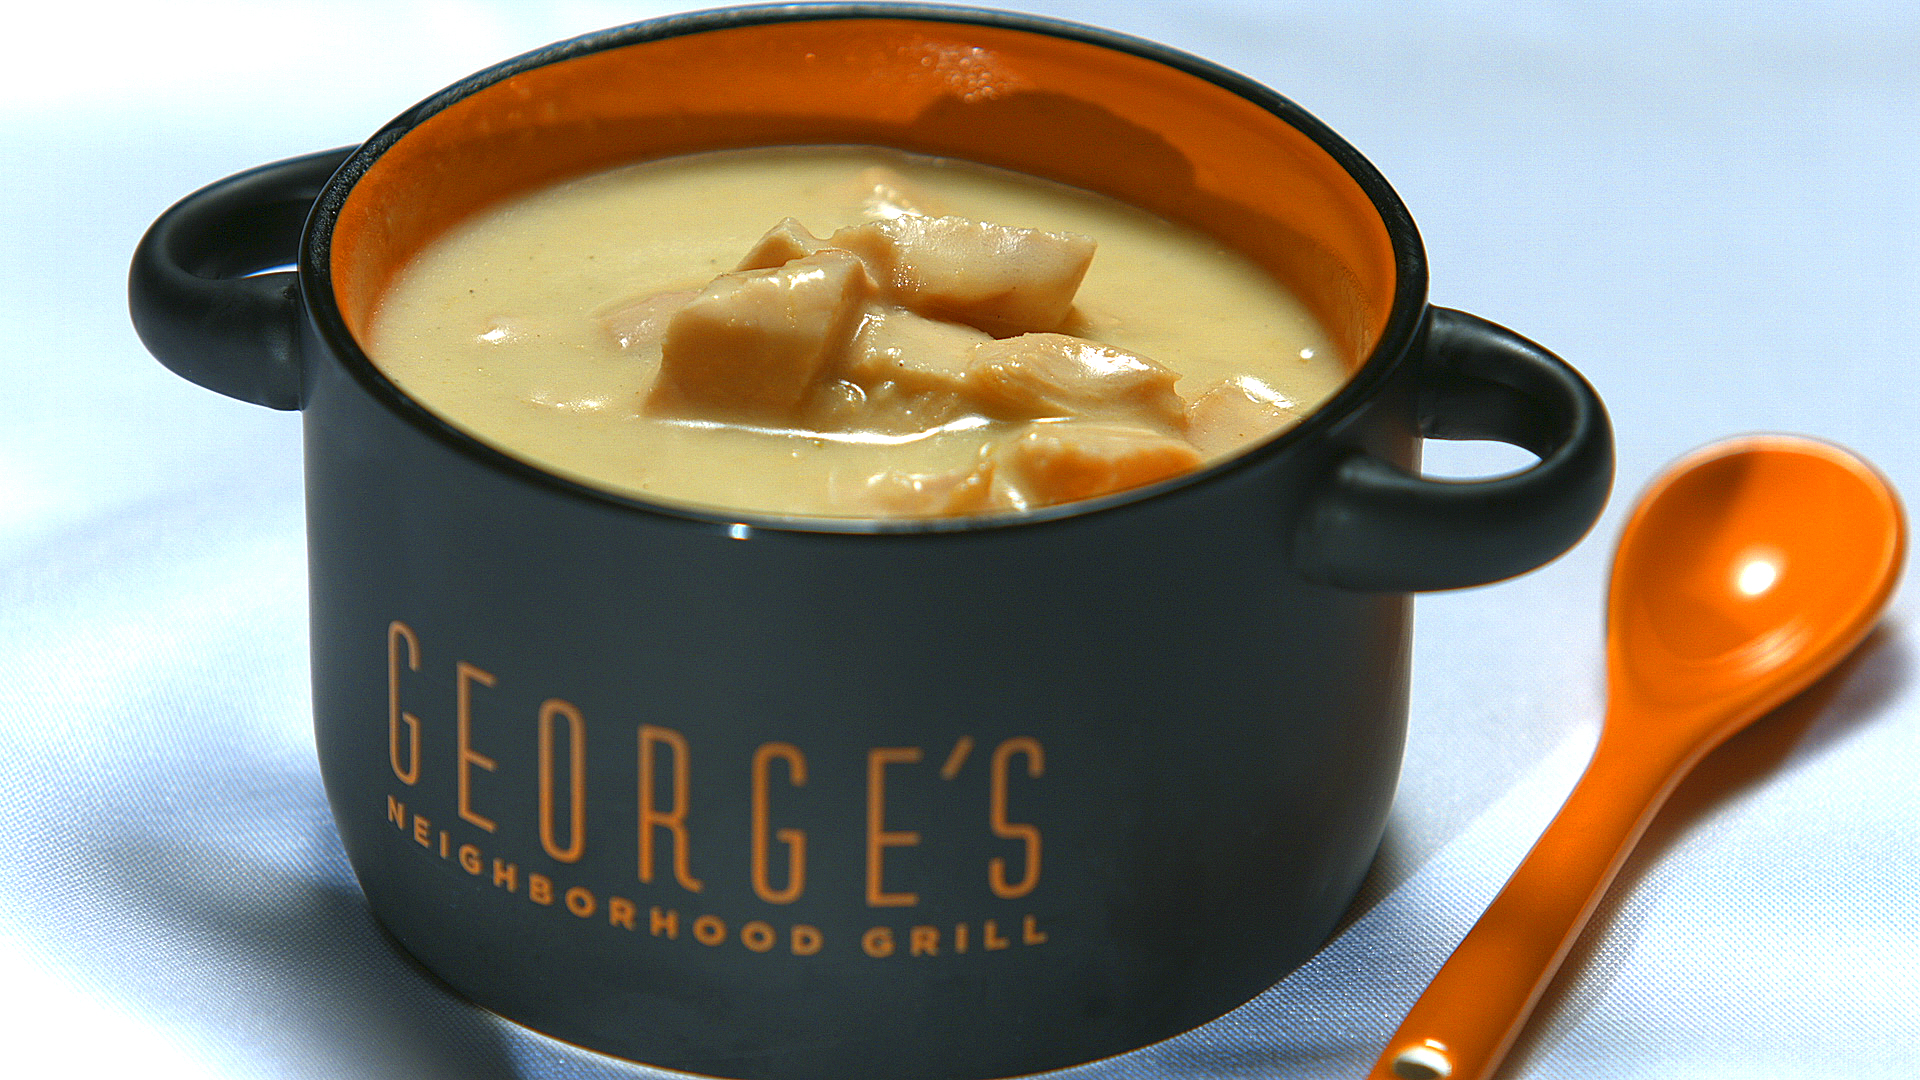 George's grill coffee cup filled with soup